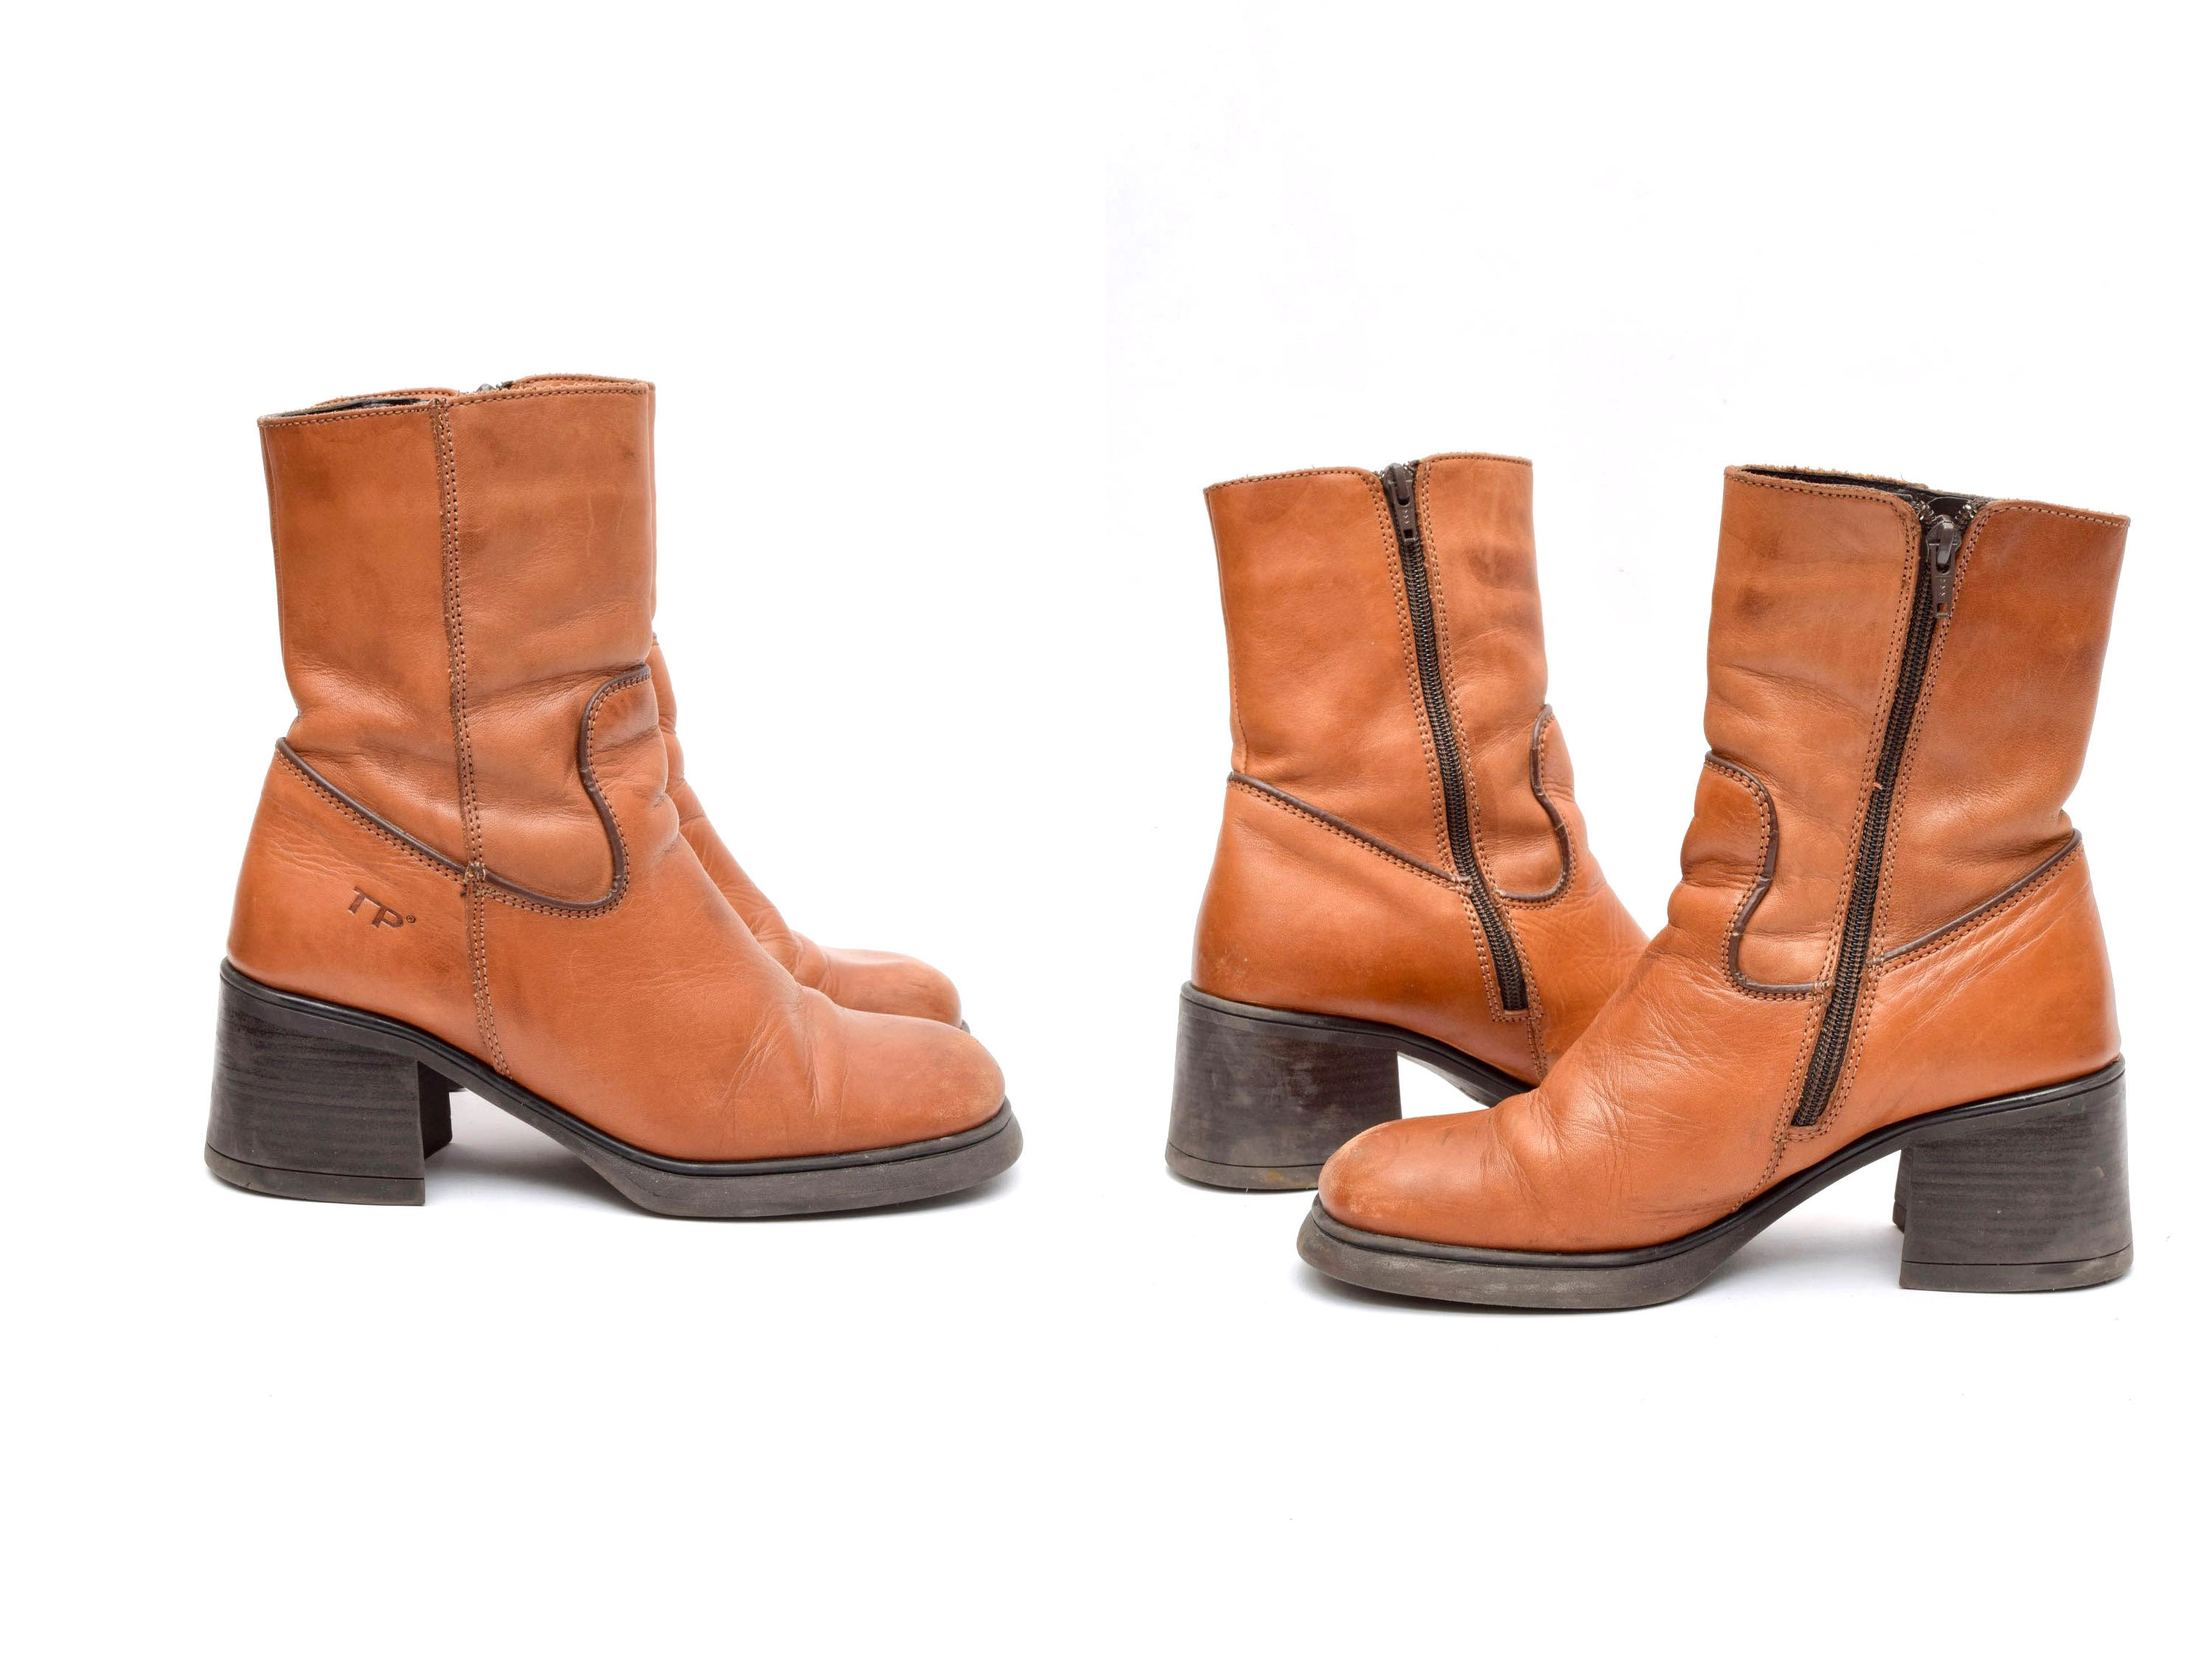 3b596ed3af66 Vintage 90 s Brown Leather Chunky Heel 70 s Style Boots with Side Zippers